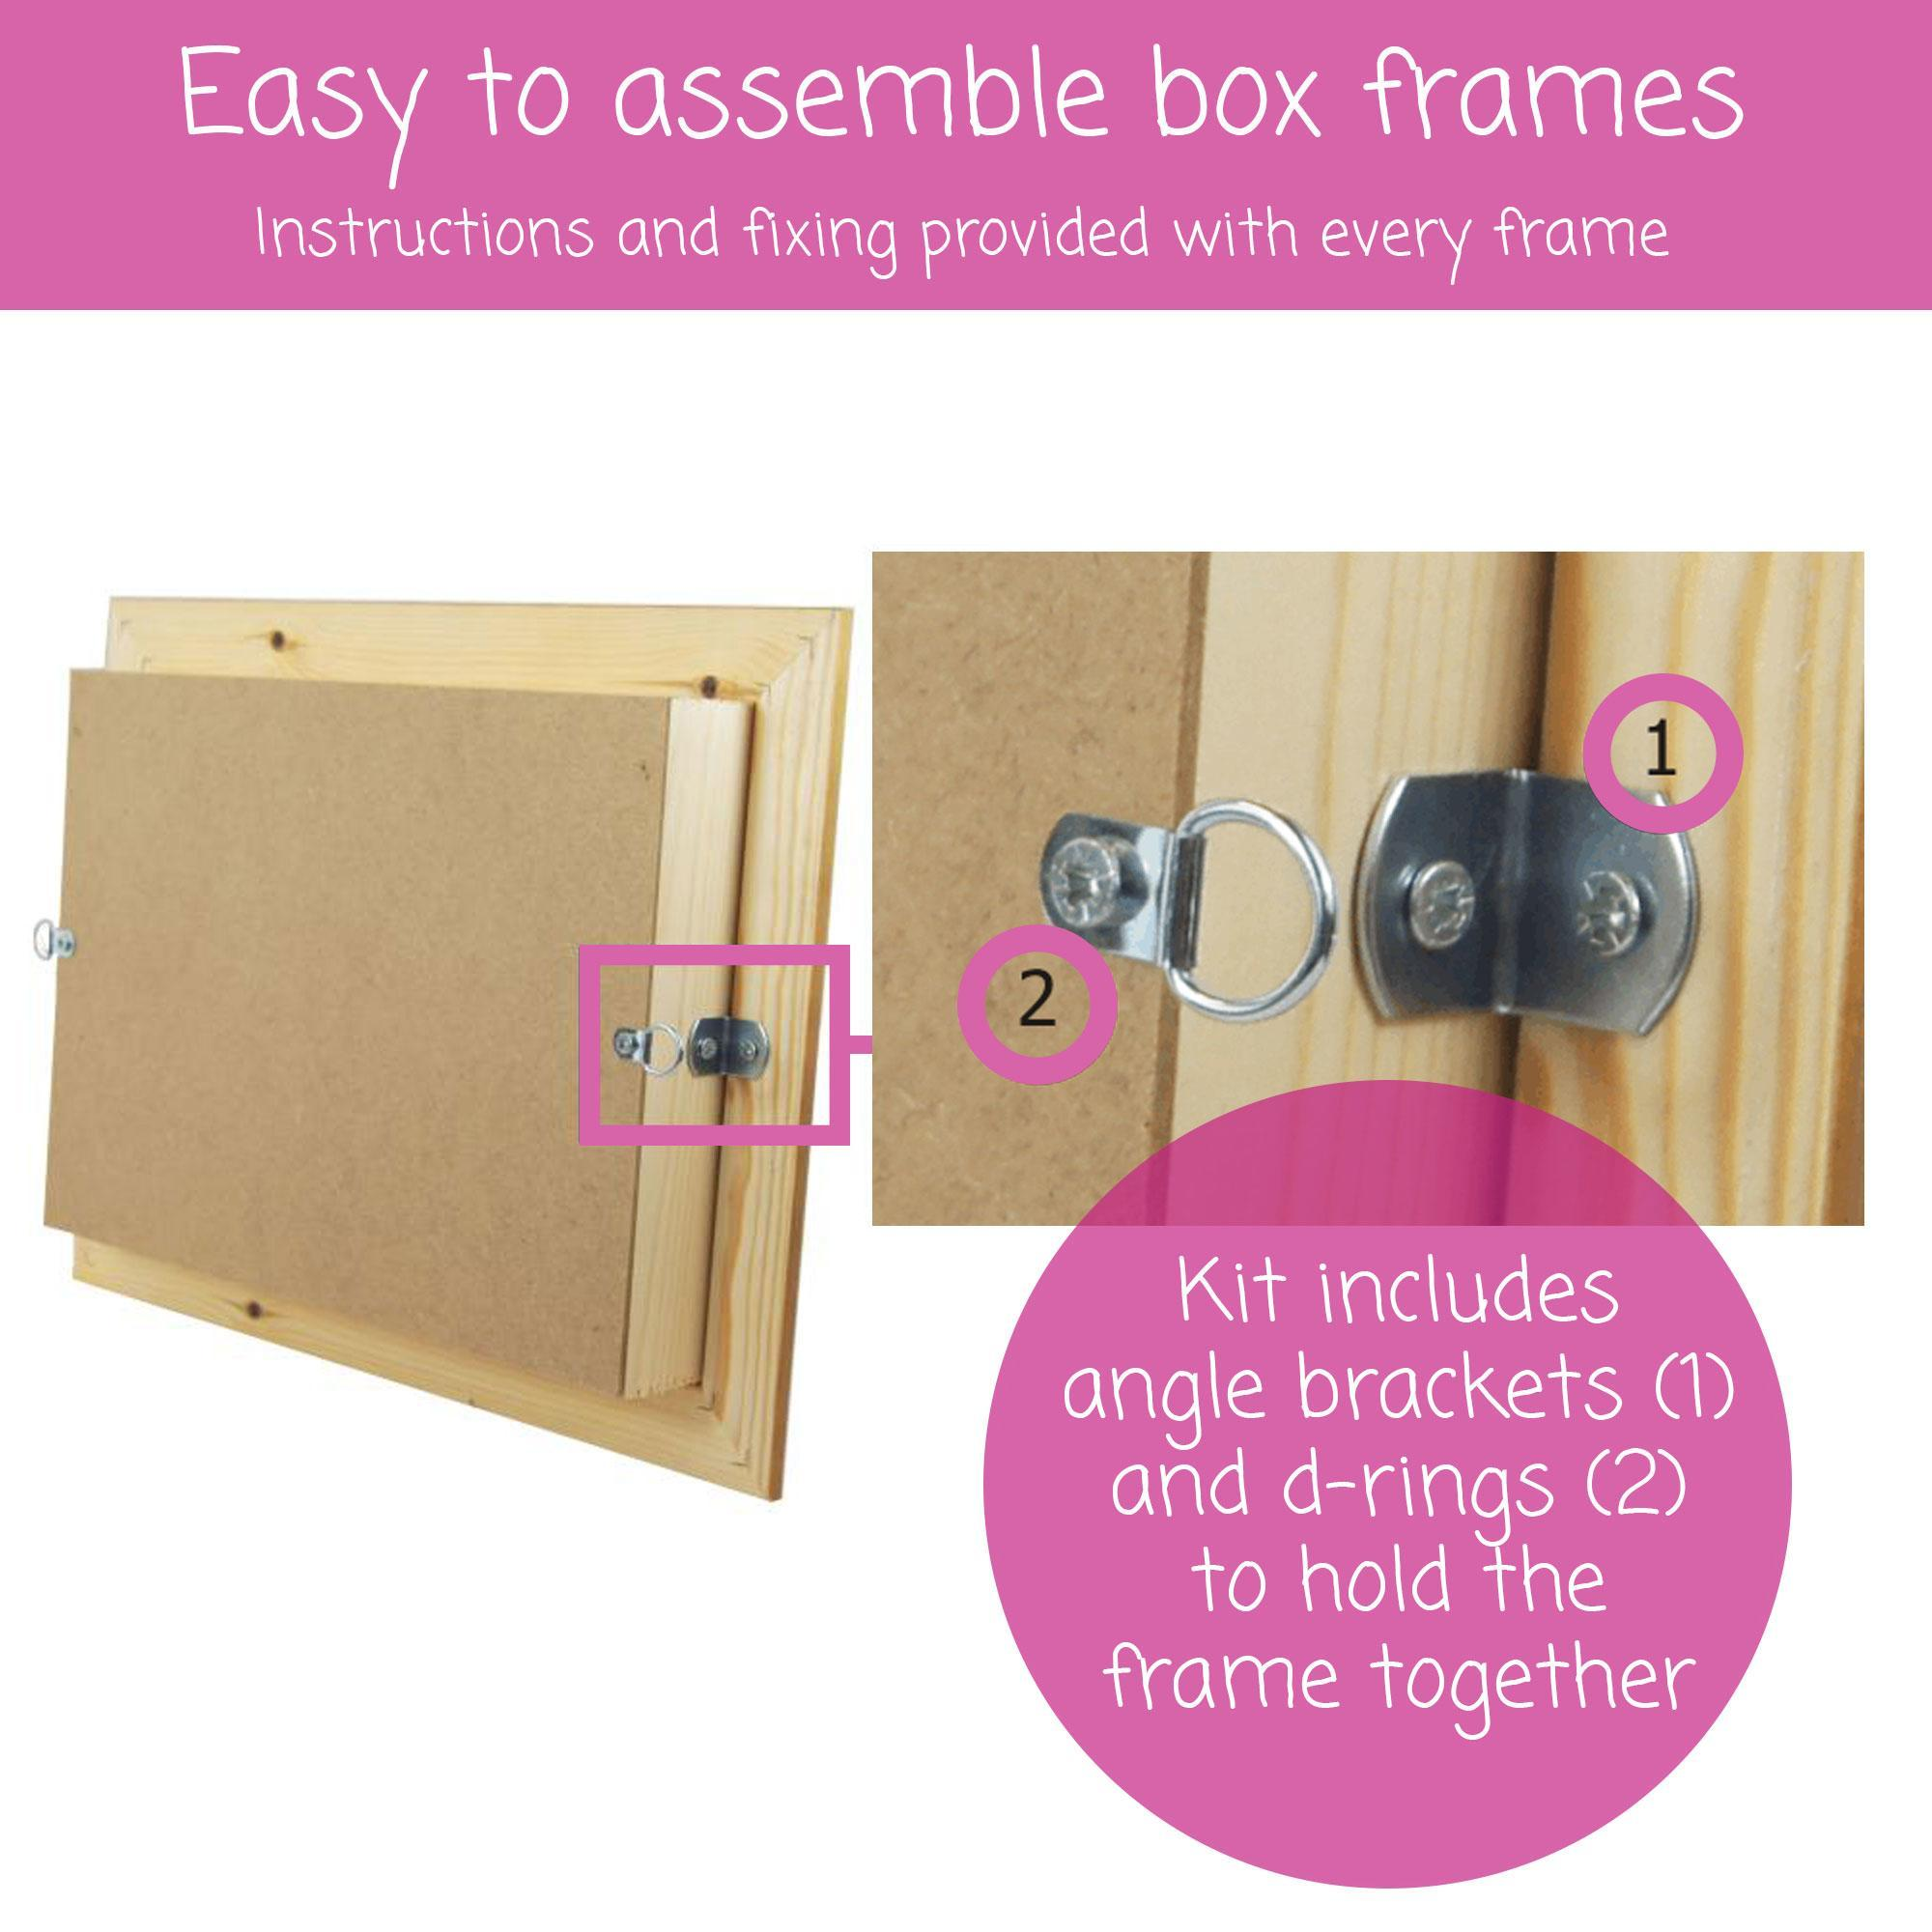 rear of box frame how to assemble